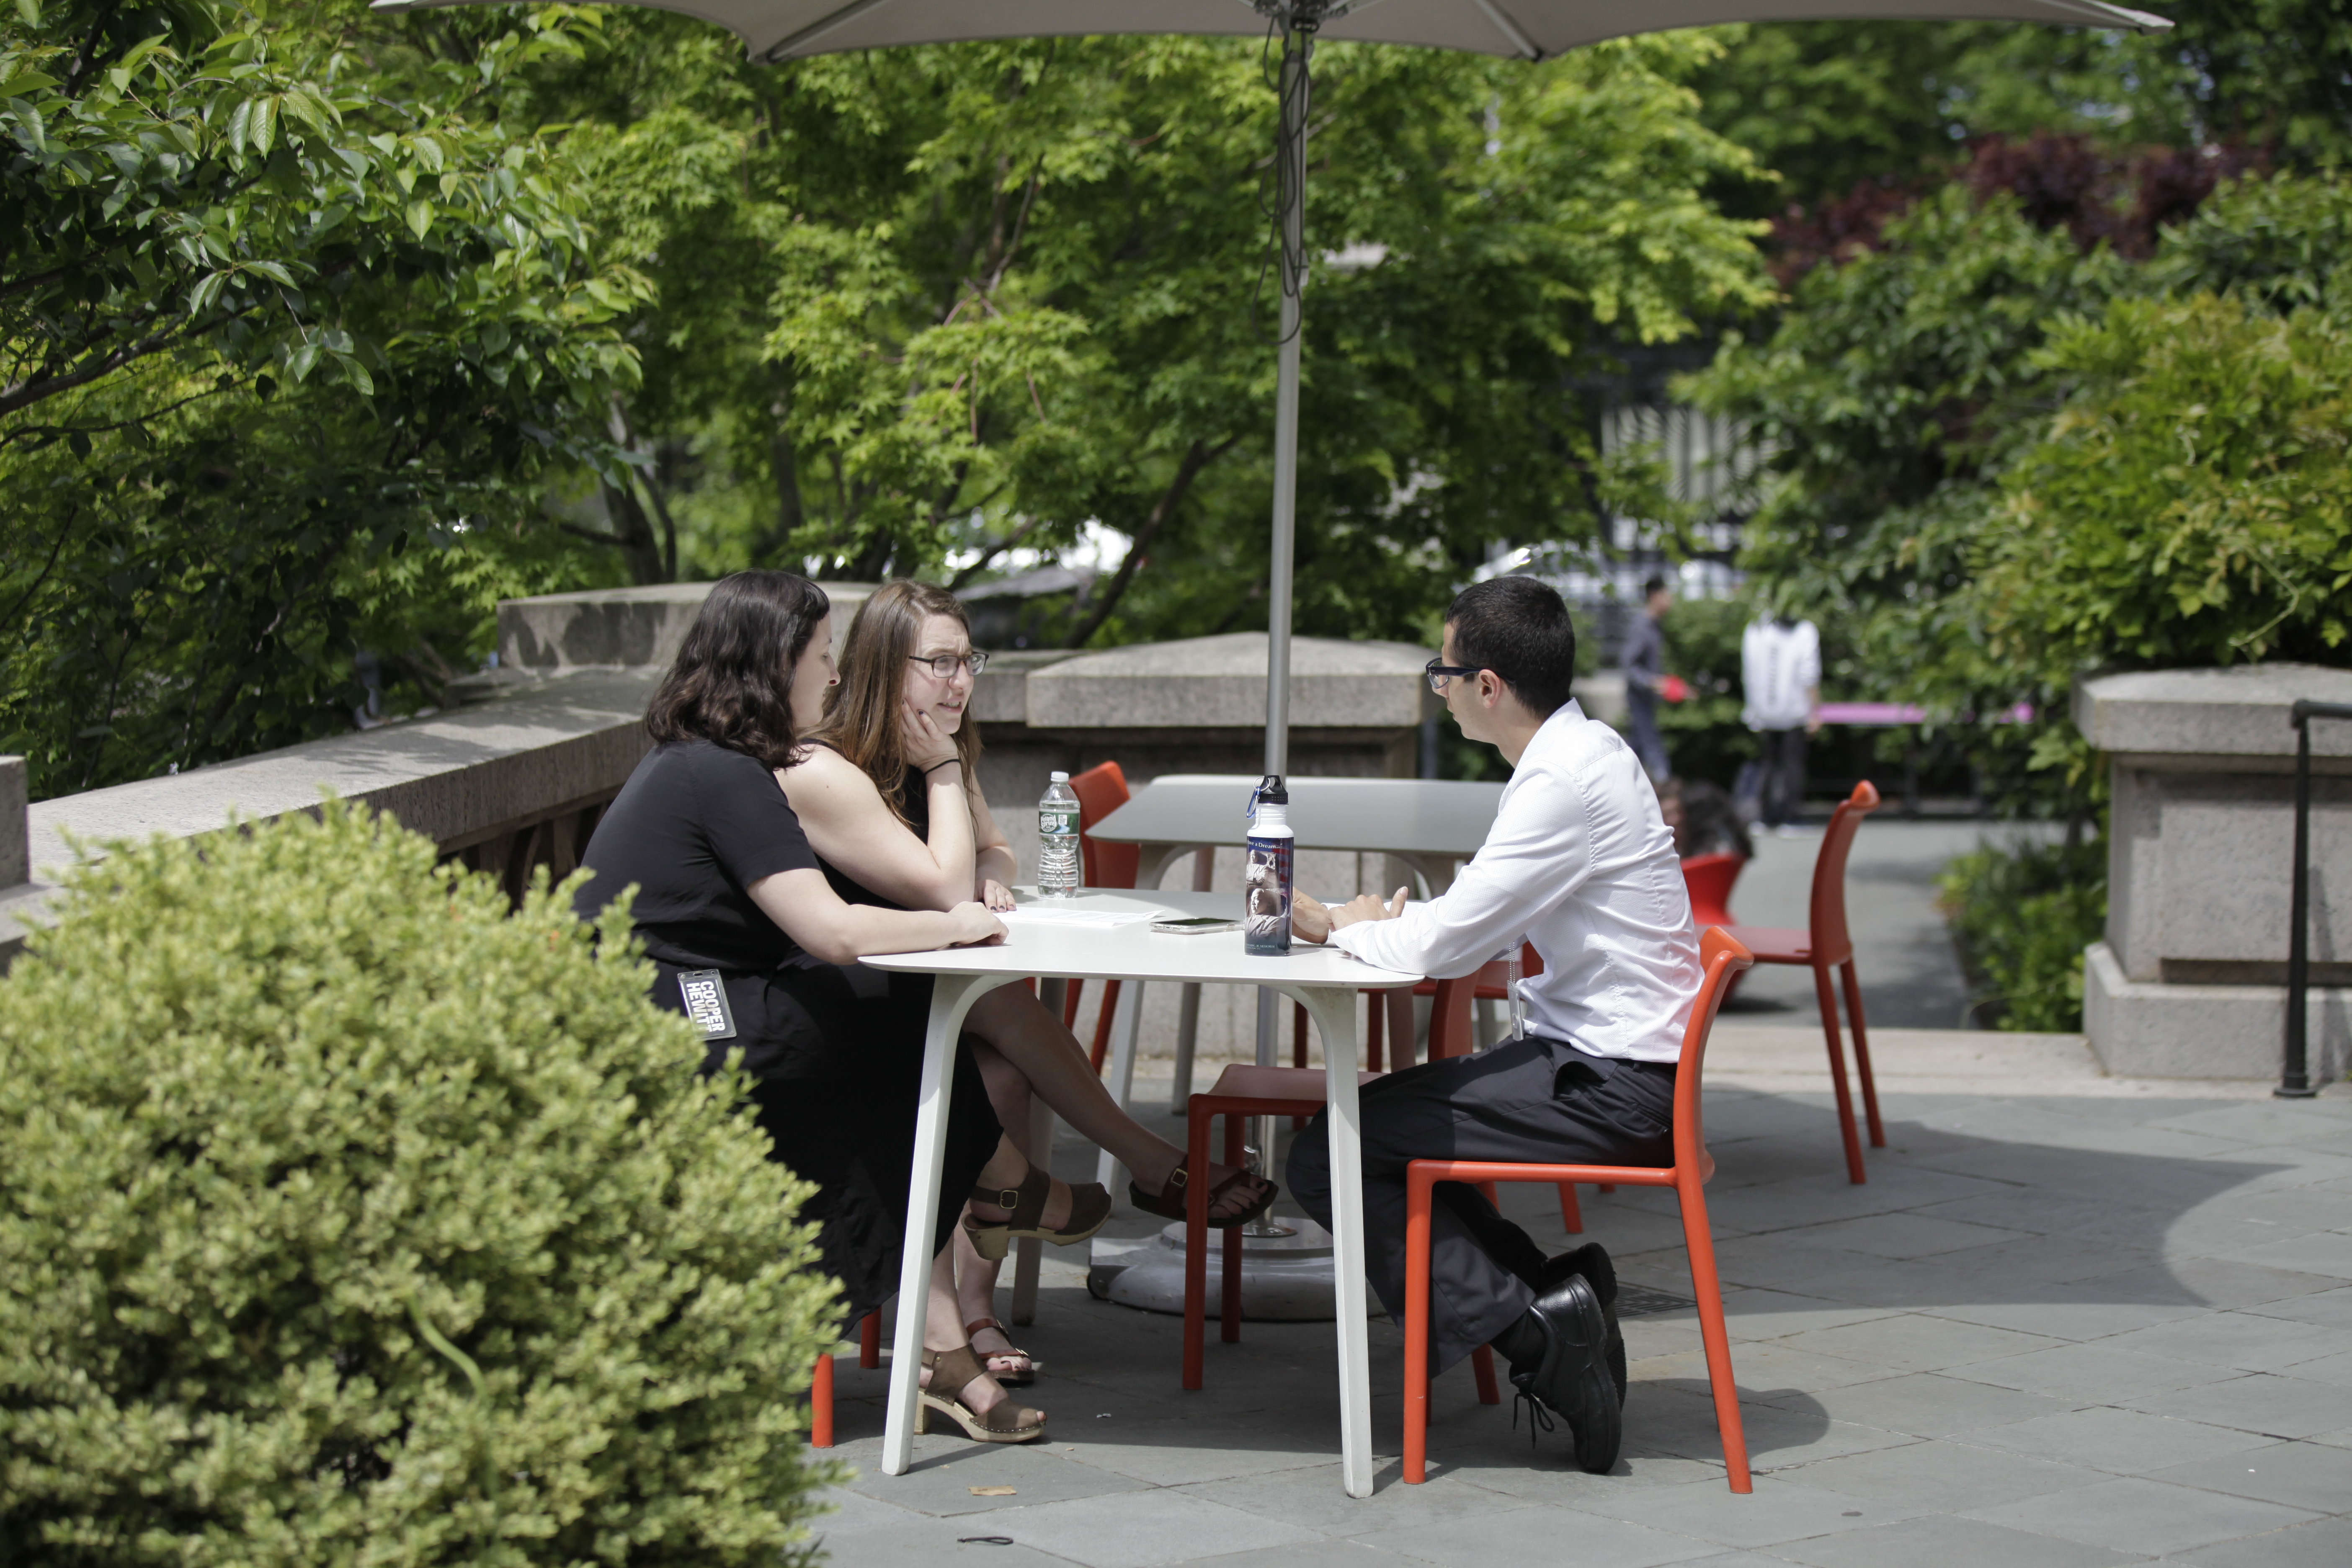 Three people sit at a table under an umbrella in the Cooper Hewitt garden